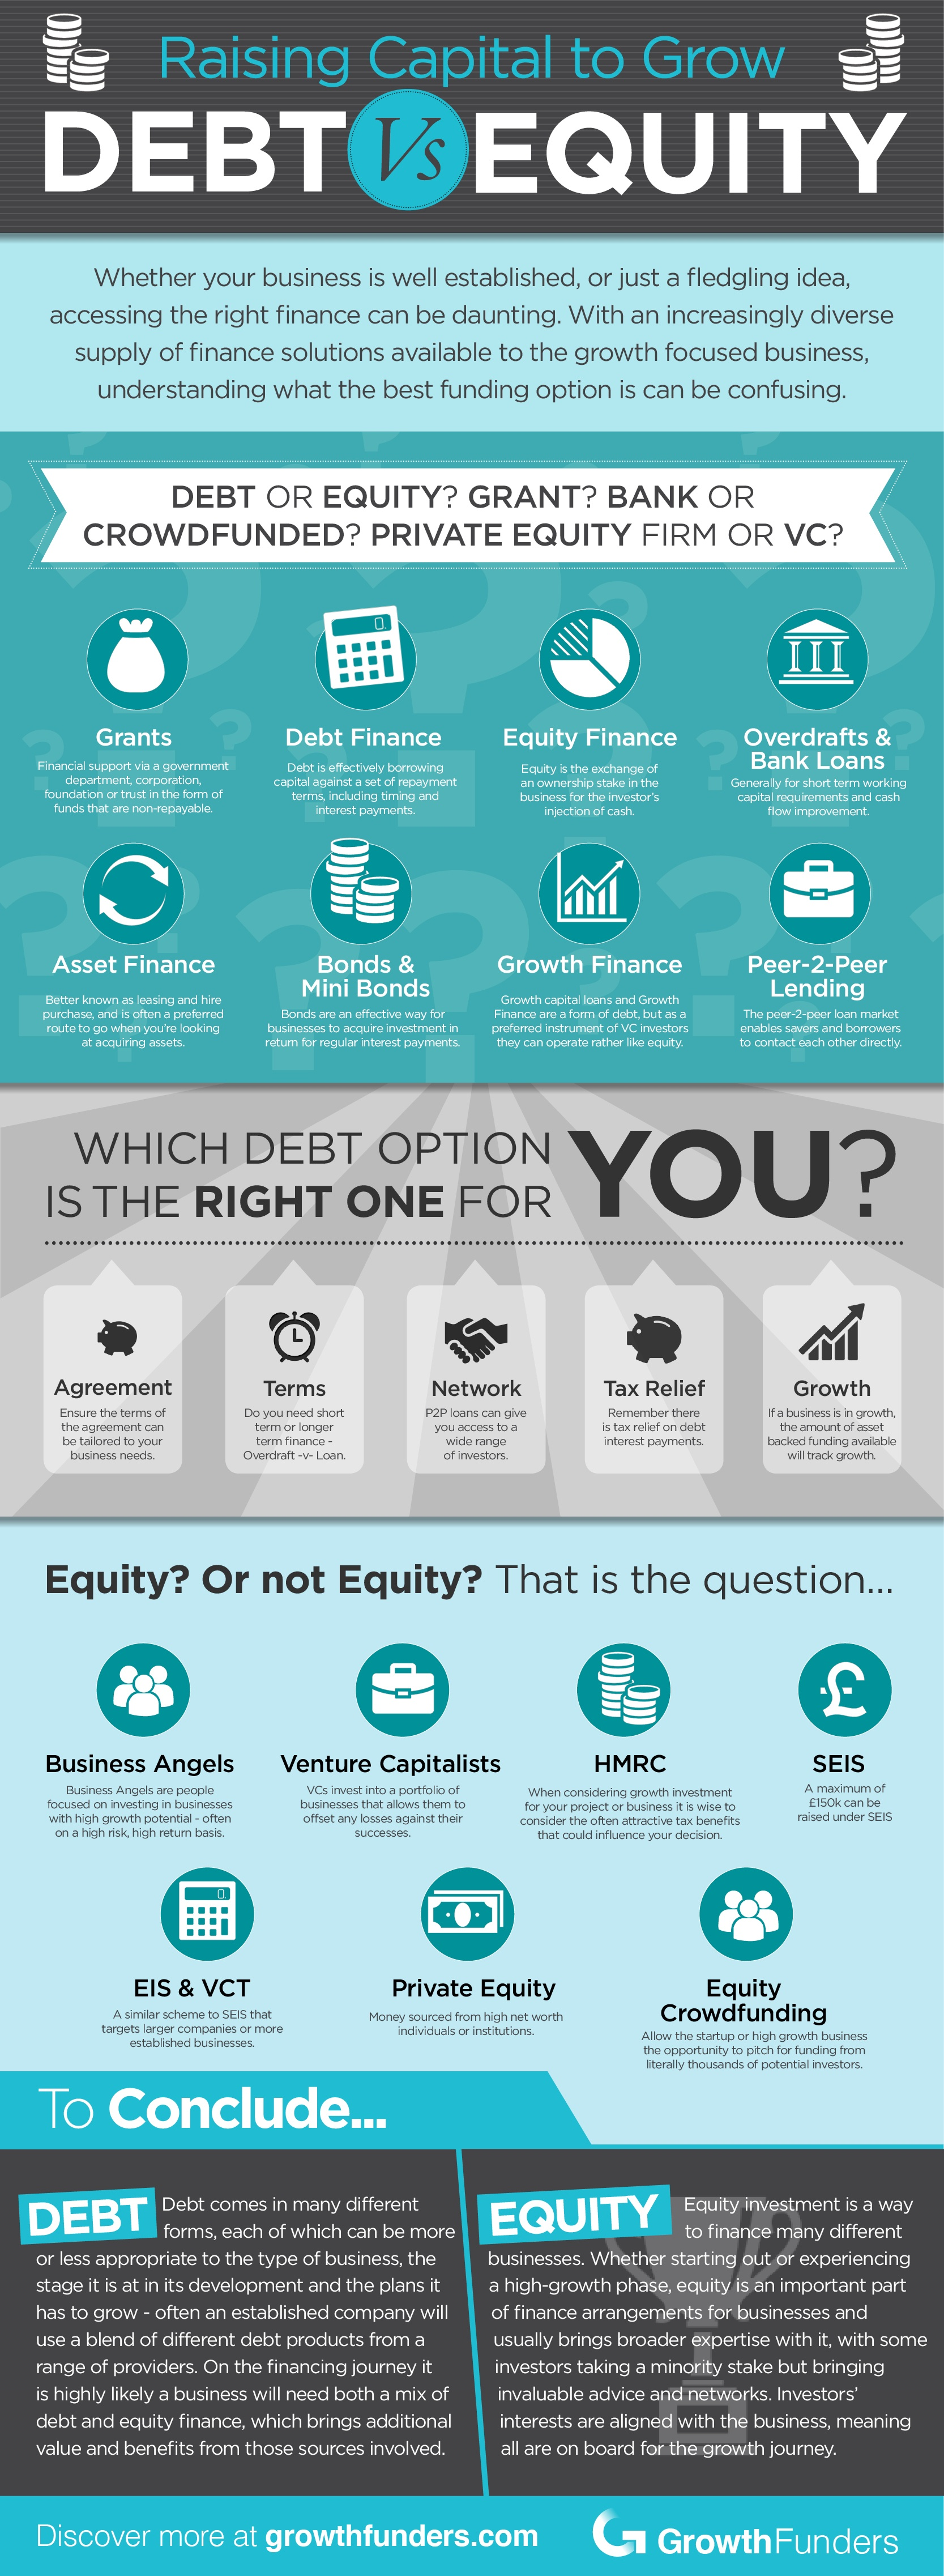 Raising-Capital-Debt-Vs-Equity-Infographic.jpg